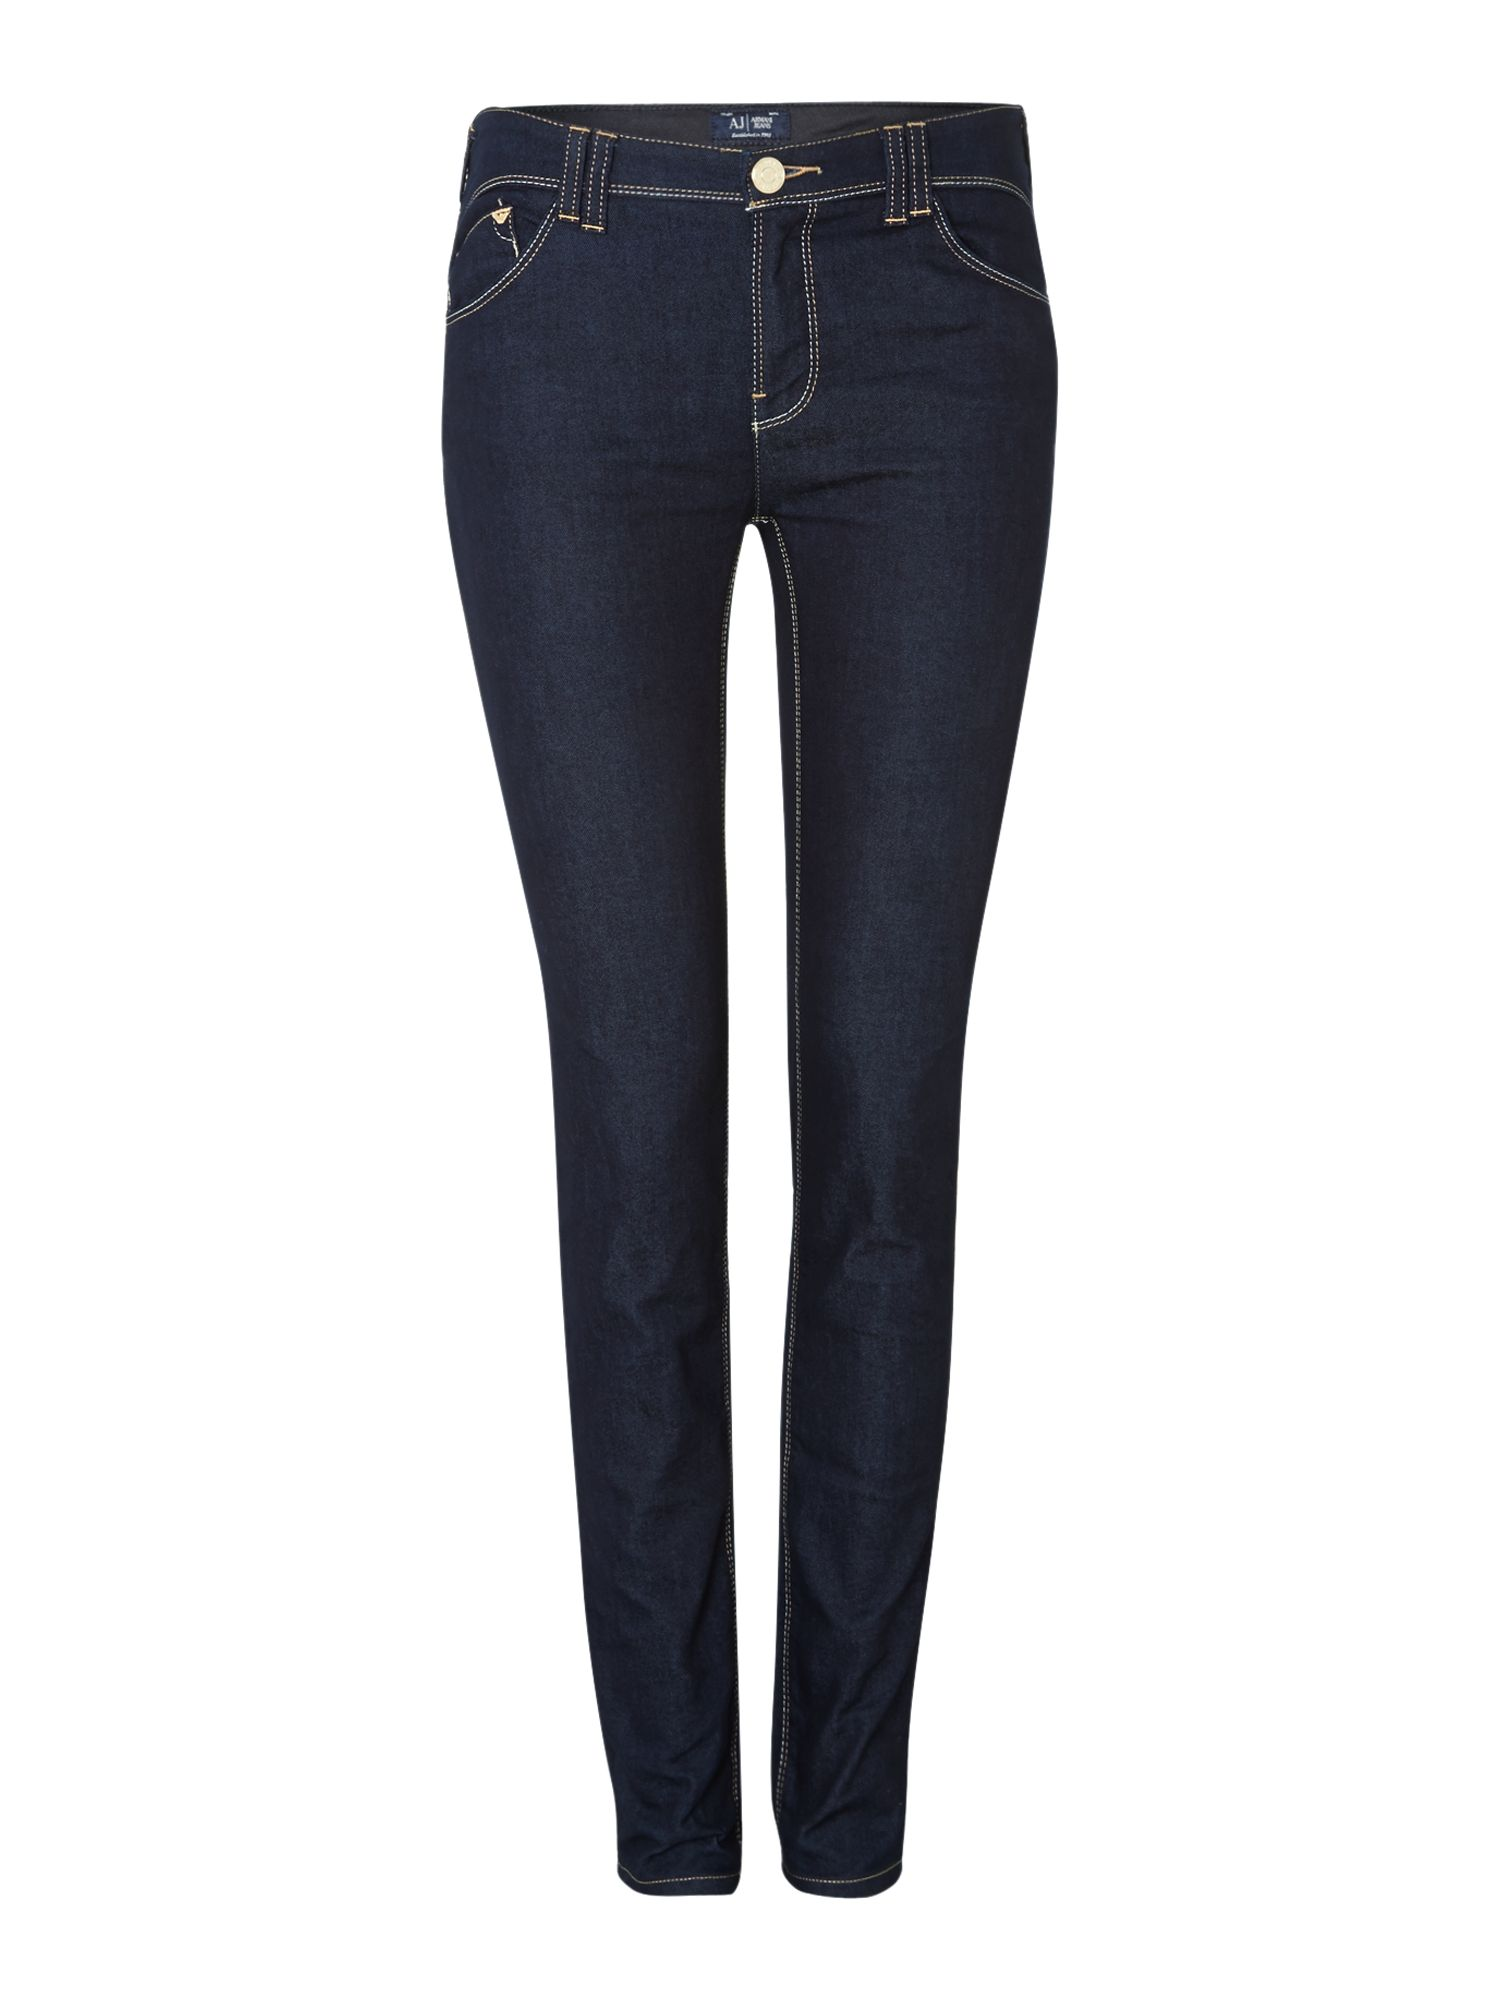 J28 mid-rise stitch pocket detail skinny jeans